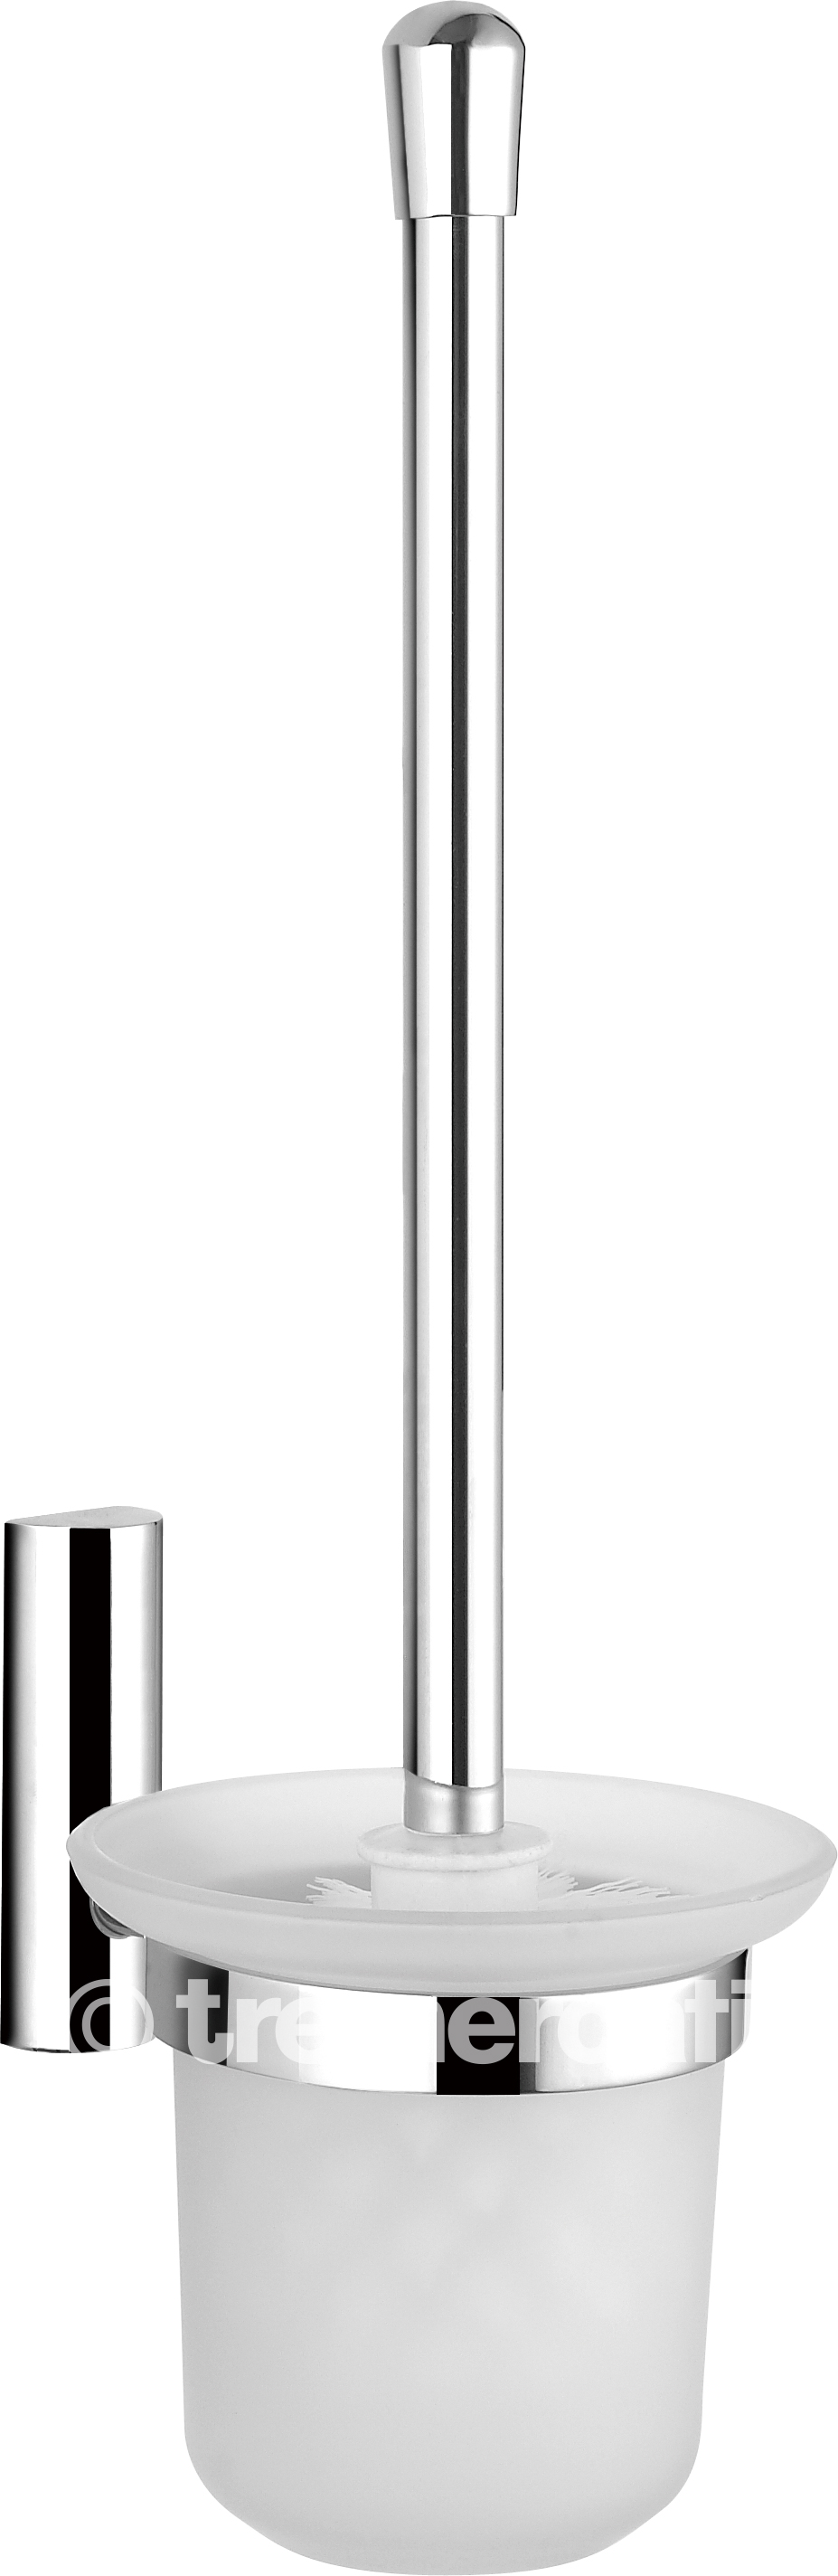 TRE MERCATI TWIGGY WALL MOUNTED TOILET BRUSH AND HOLDER - CHROME PLATED